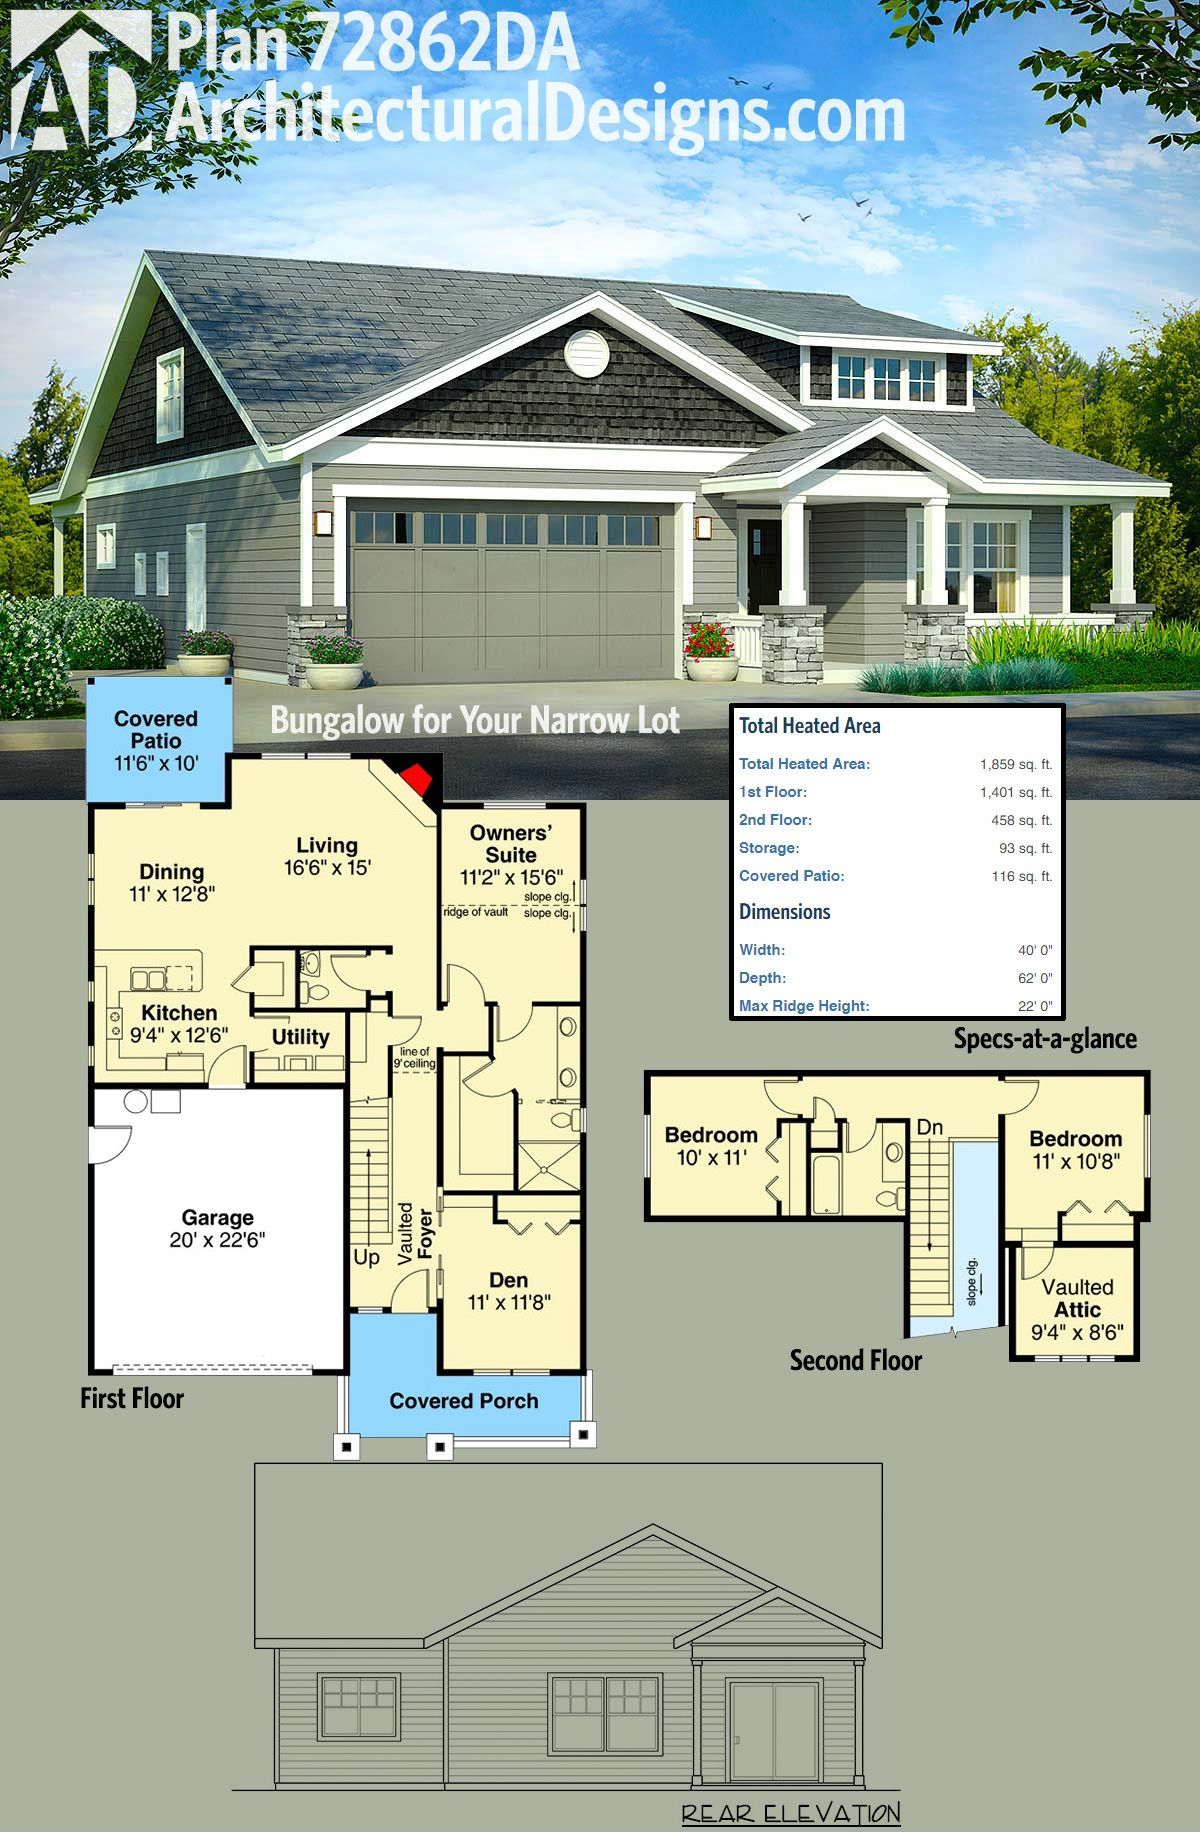 Architectural Designs Bungalow House Plan 72862DA has a shed dormer over the front porch giving light to the vaulted attic which could be put to creative uses. The home gives you 3 beds and over 1,800 square feet of heated living space. Ready when you are. Where do YOU want to build?